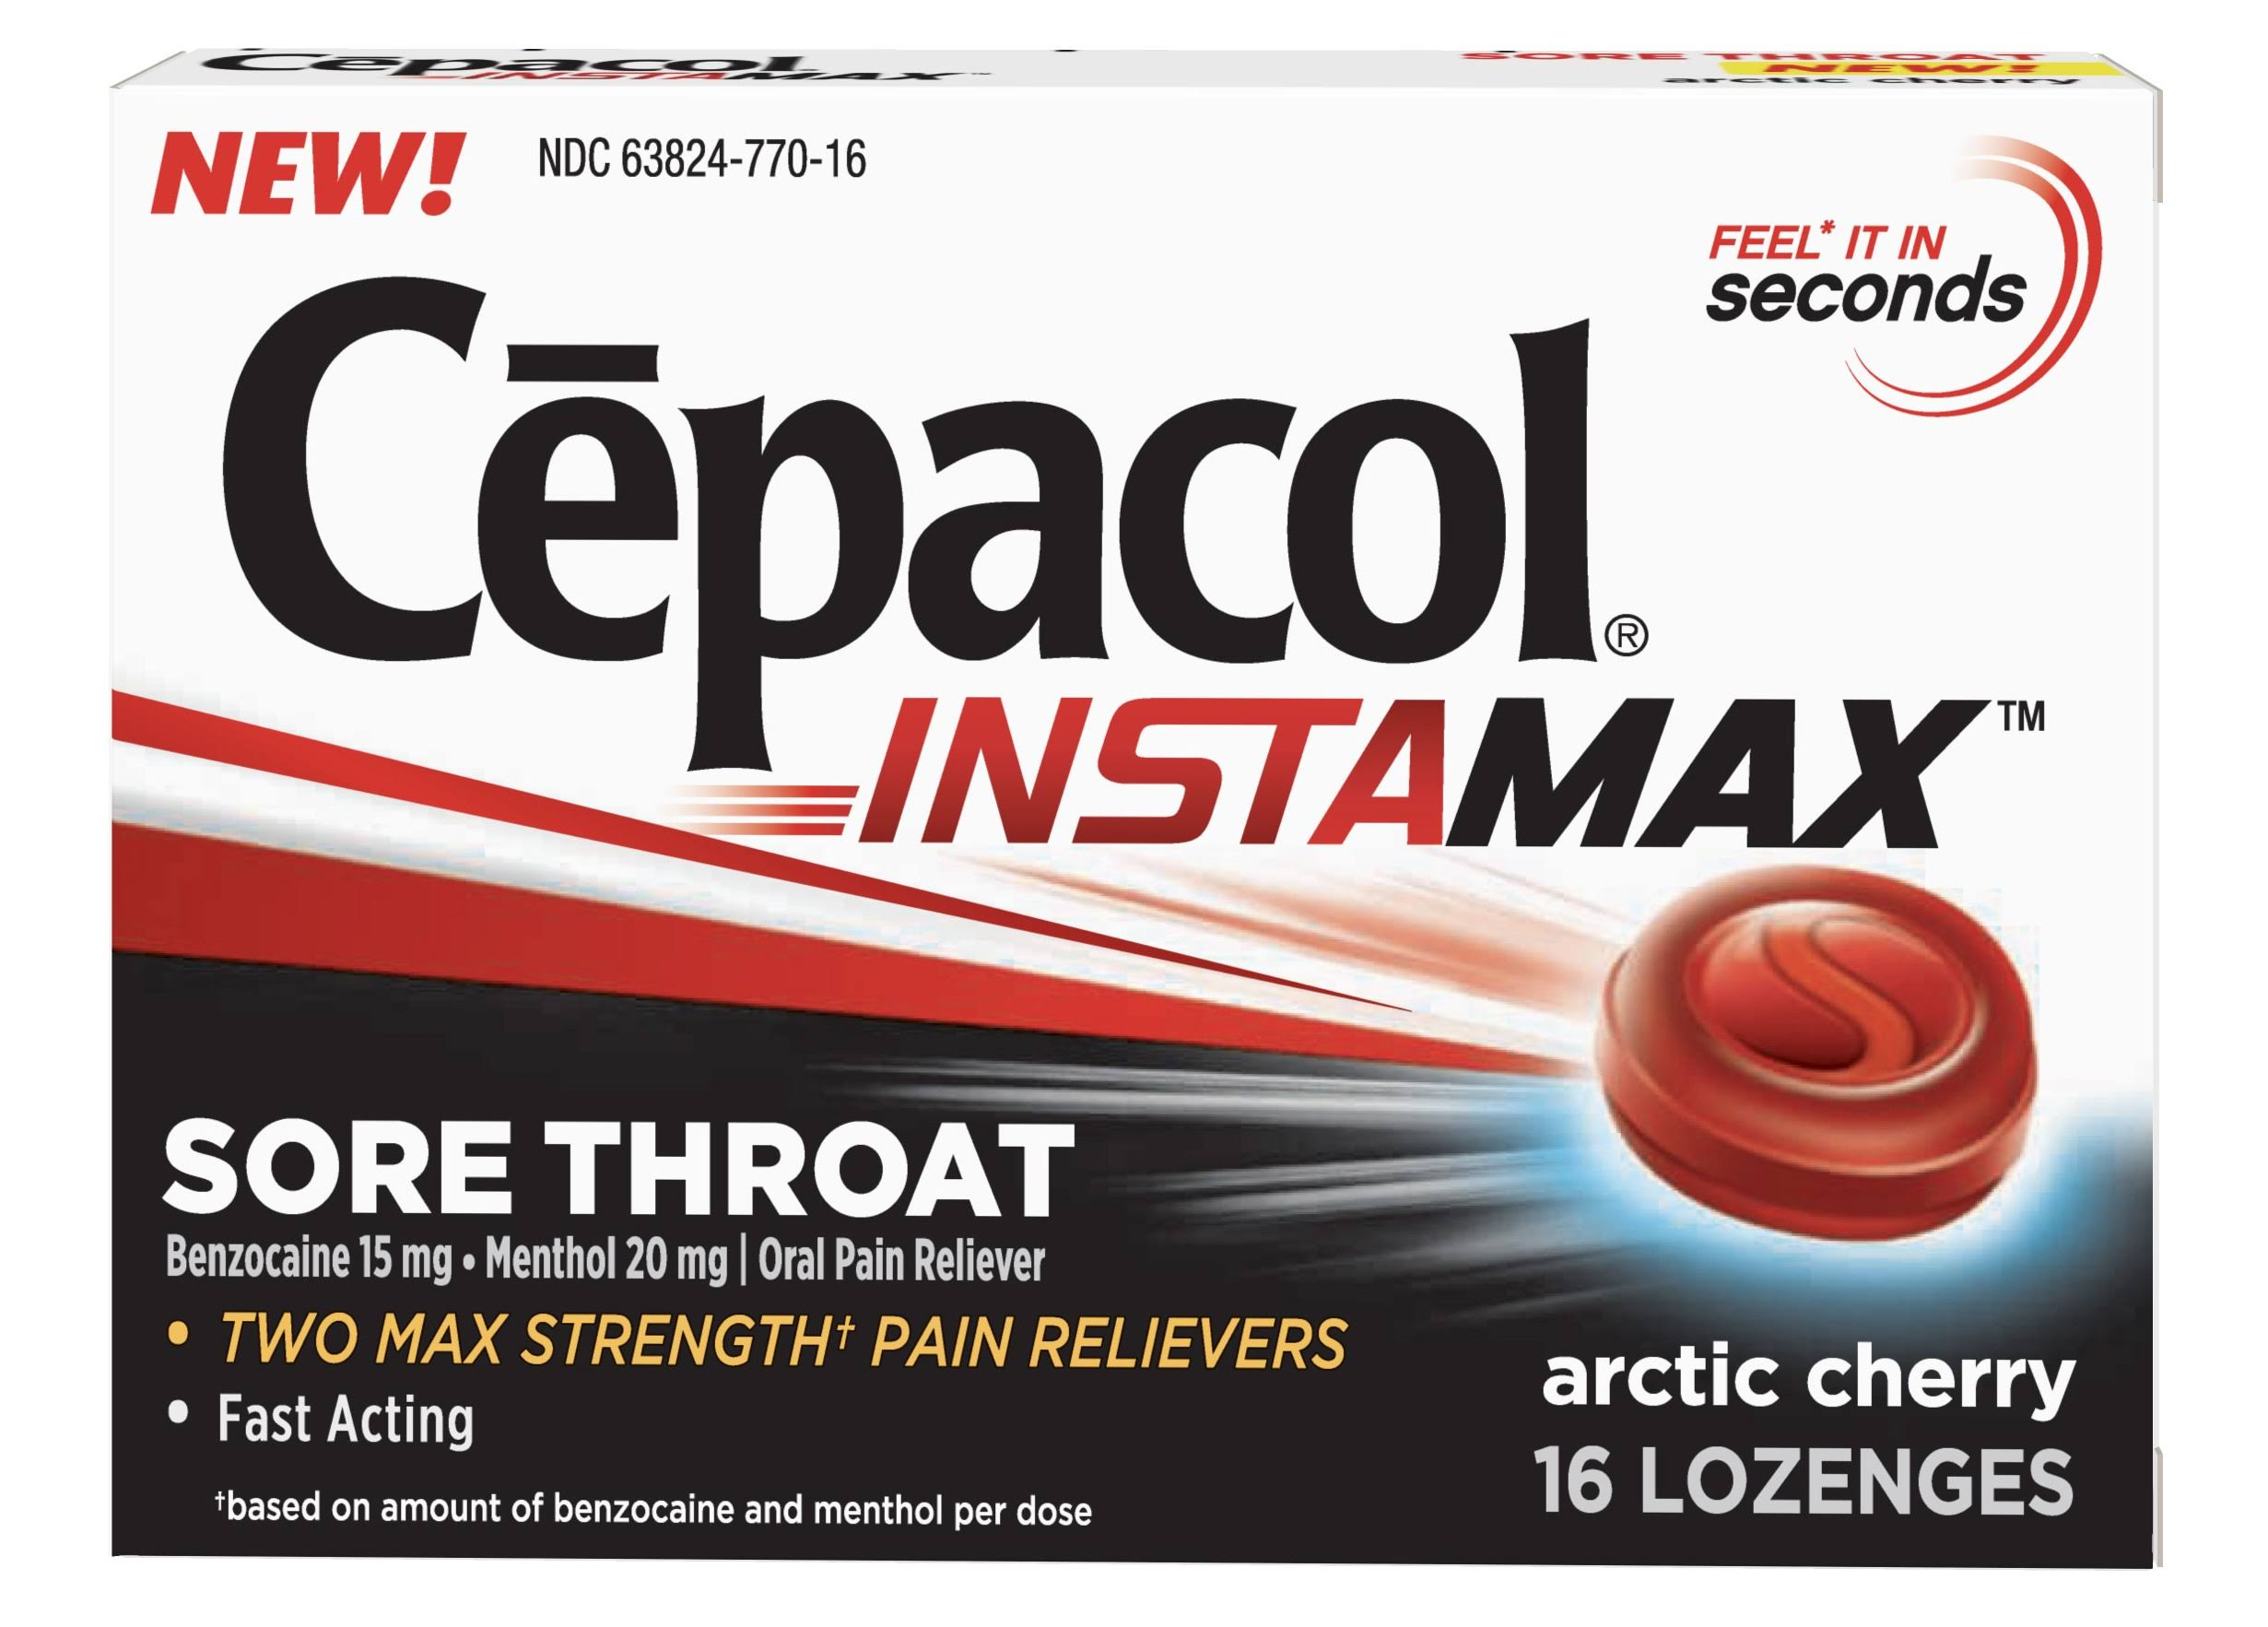 Cepacol Instamax Sore Throat & Cough Drop Lozenges Artic Cherry